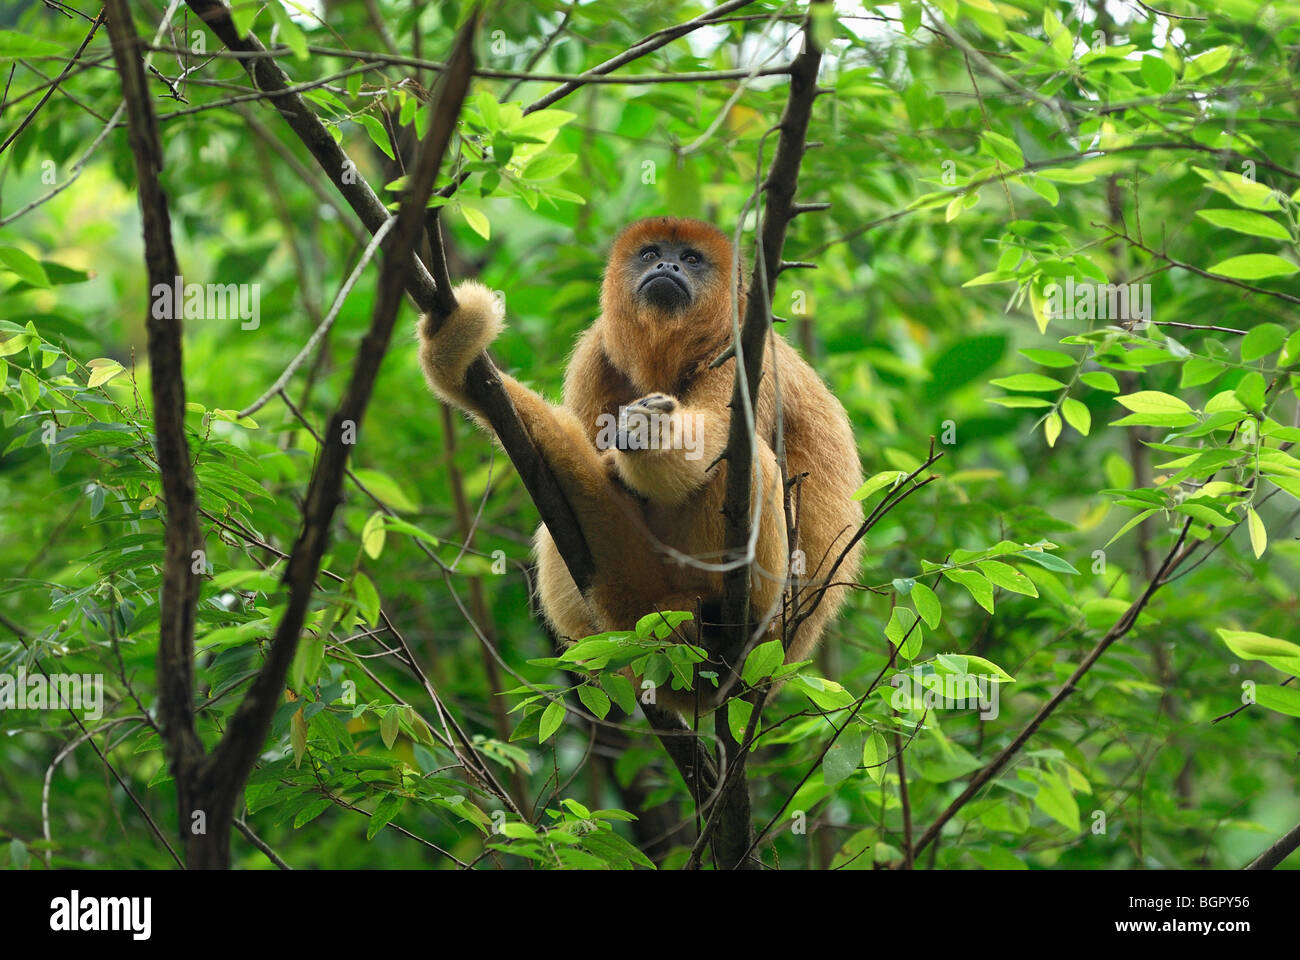 Black-and-Gold Howler Monkey (Alouatta caraya), adult, Brazil - Stock Image